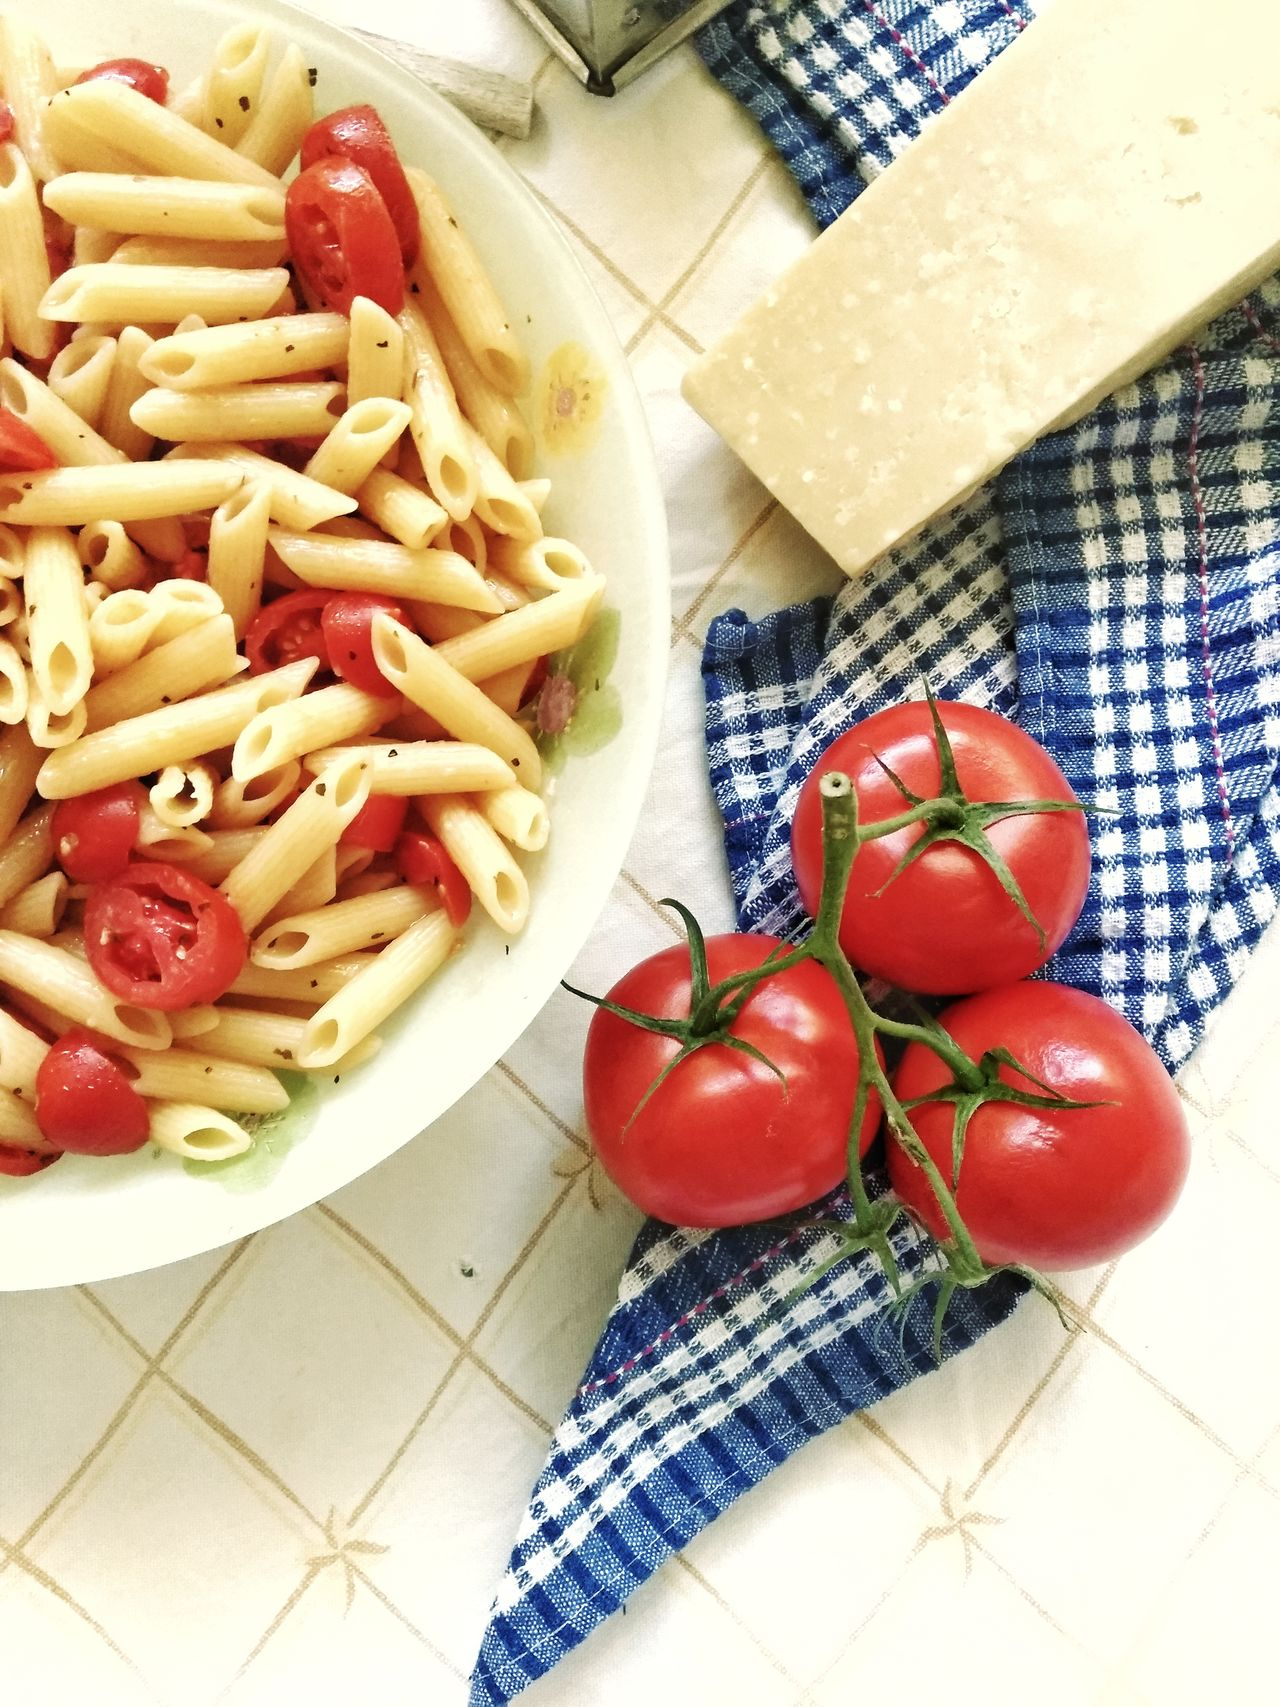 Freshness Food And Drink Indoors  Food Healthy Eating High Angle View Tomato Table Vegetable No People Plate Red Italian Food Healthy Lifestyle Ready-to-eat Day Close-up Mediterranean Lifestyle Bowl Mediterranean Food Diet Comfort Food Homemade Pasta Red